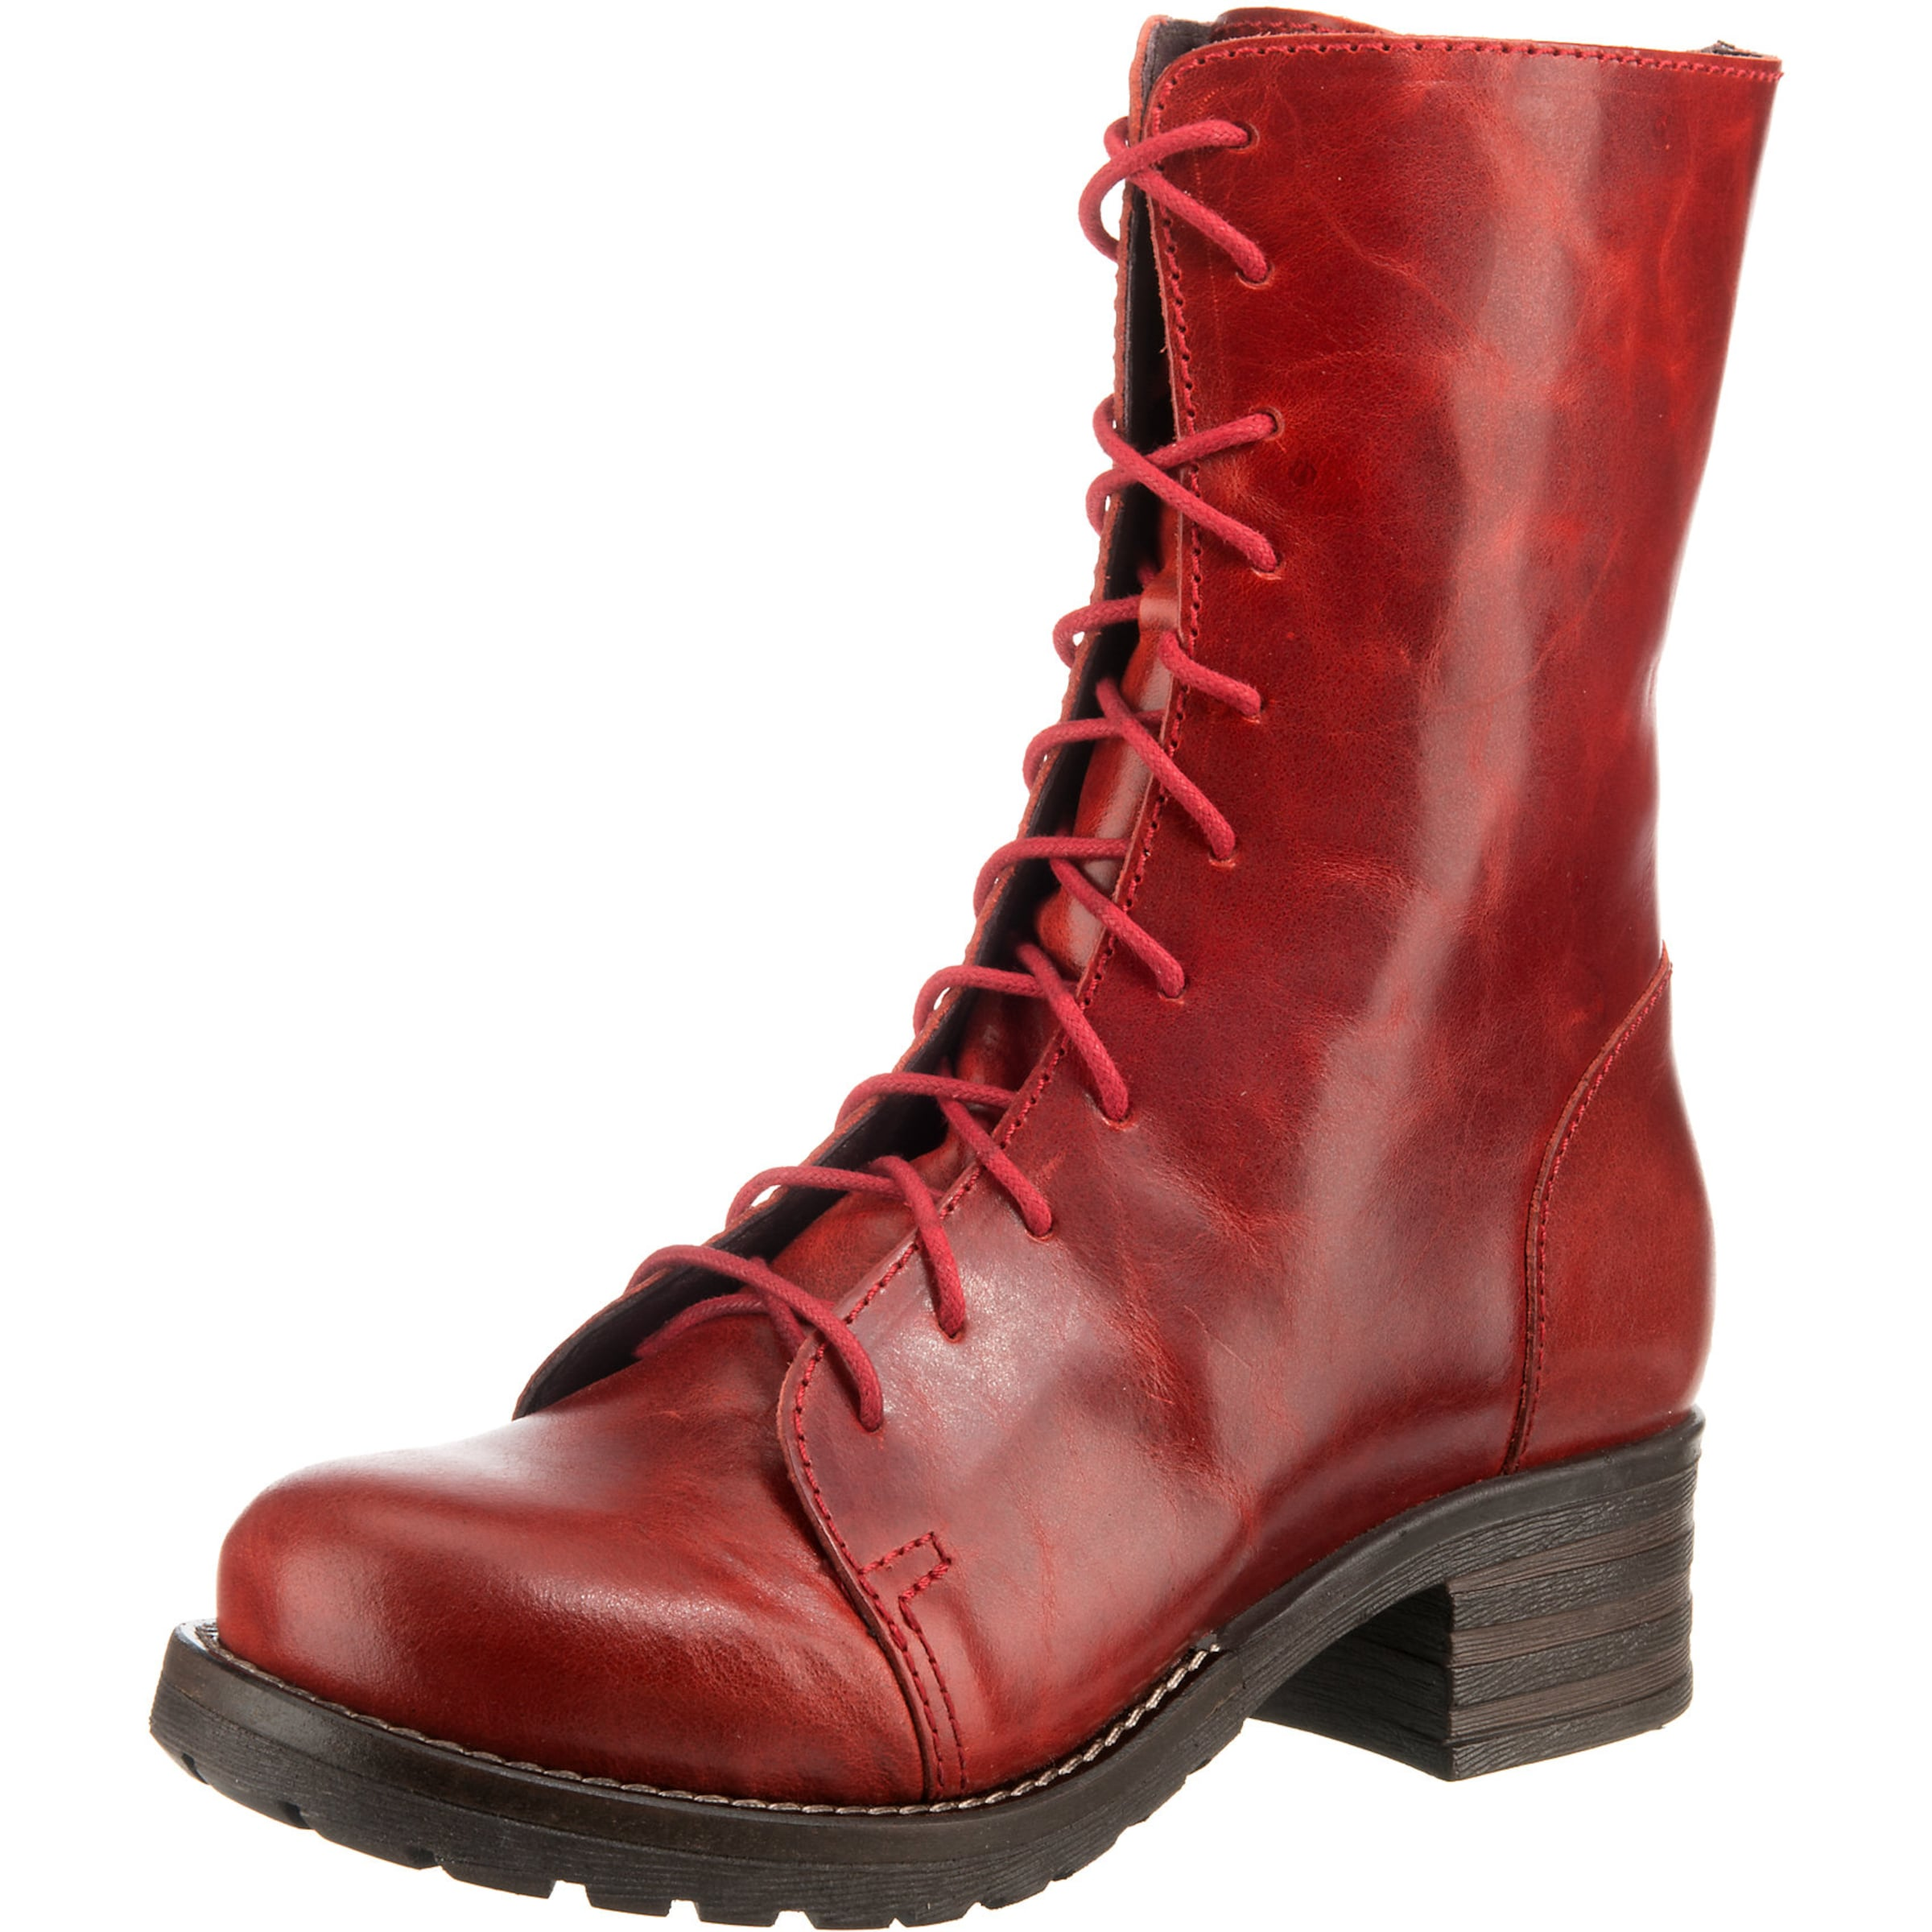 Schnürstiefelette 'military' 'military' Rot Schnürstiefelette In In Rot Brako Brako L5j34qAR